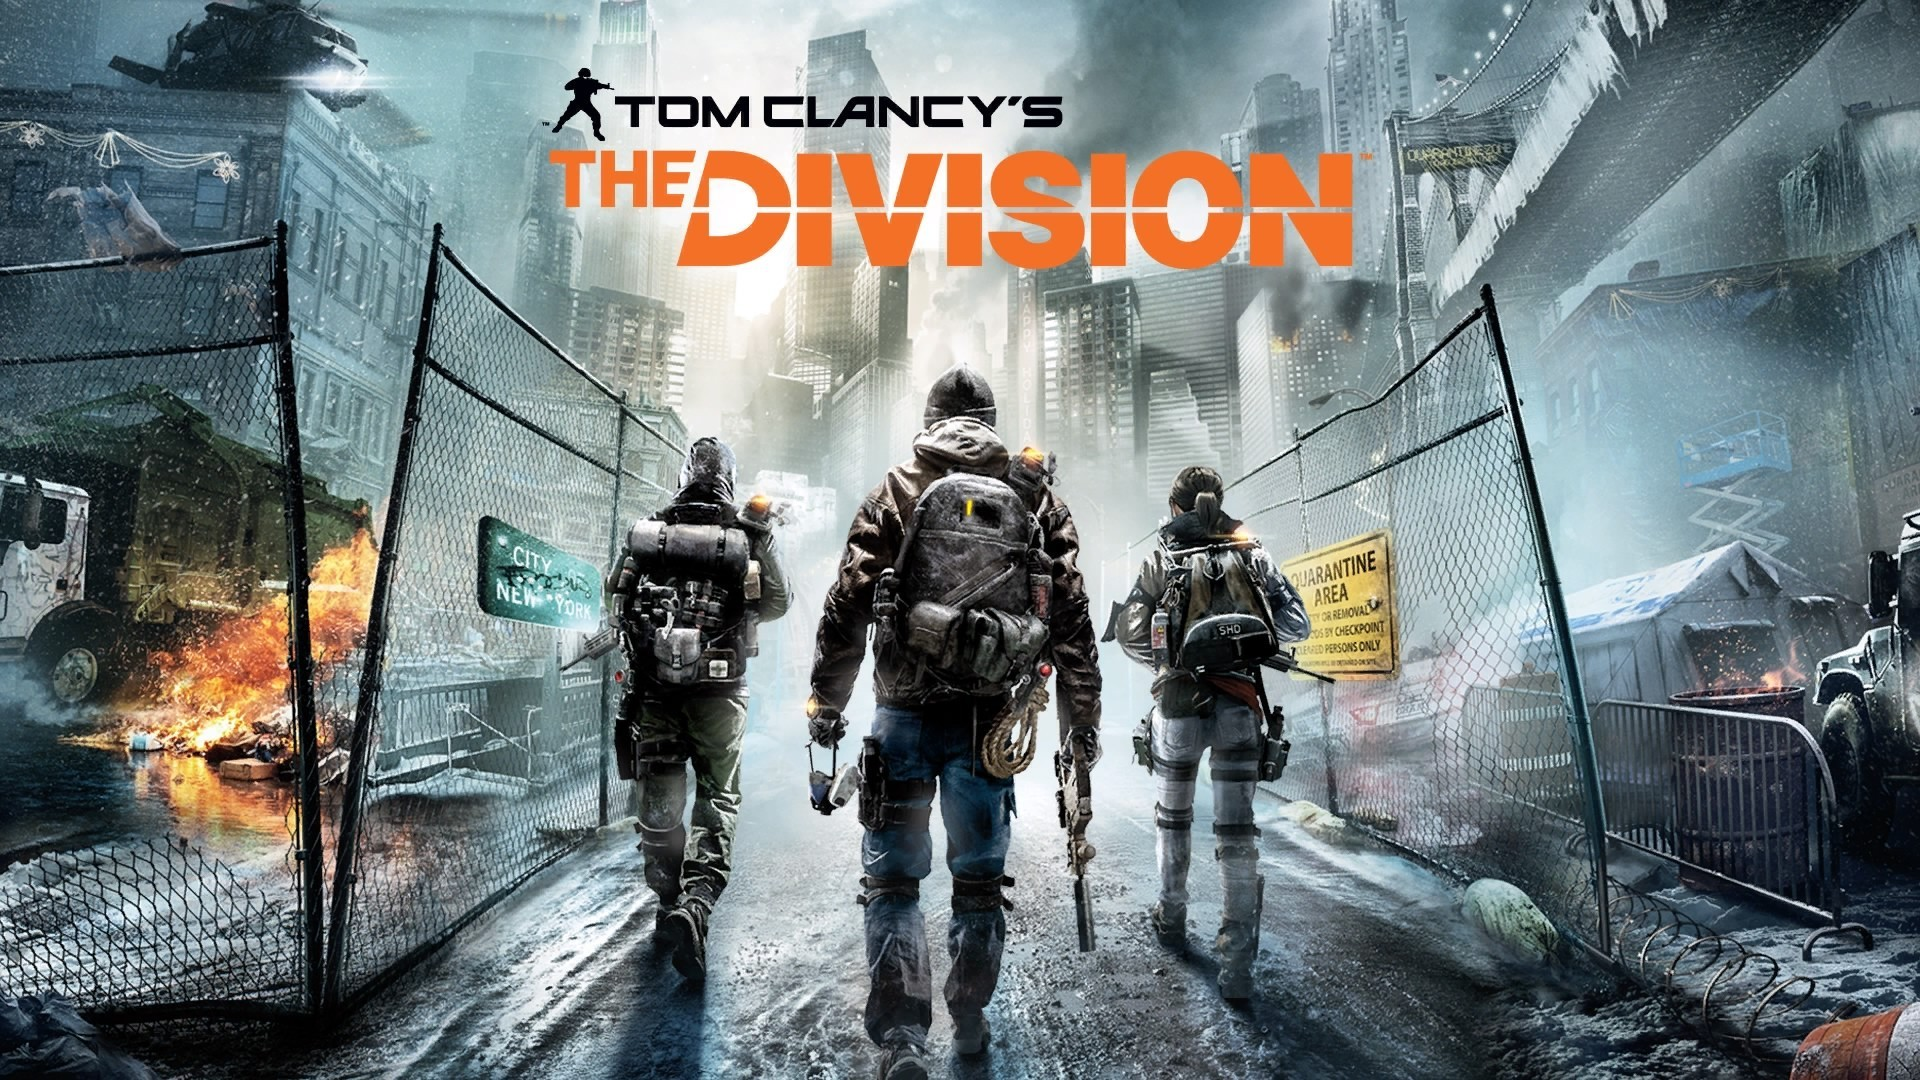 Tom Clancy's The Division (PS4, Xbox One, & PC)